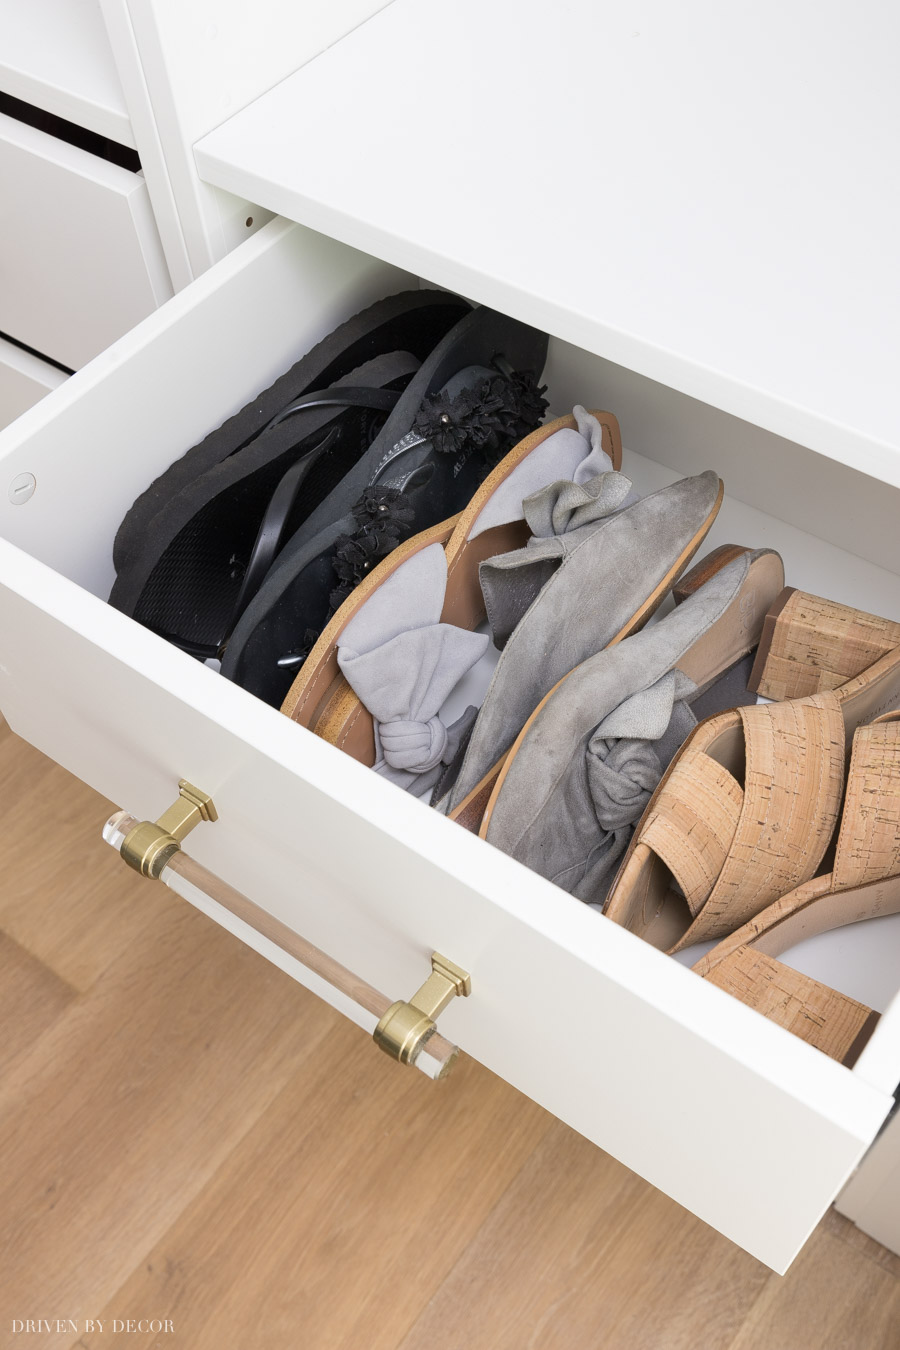 Shoe storage in IKEA PAX wardrobes with KOMPLEMENT drawers!